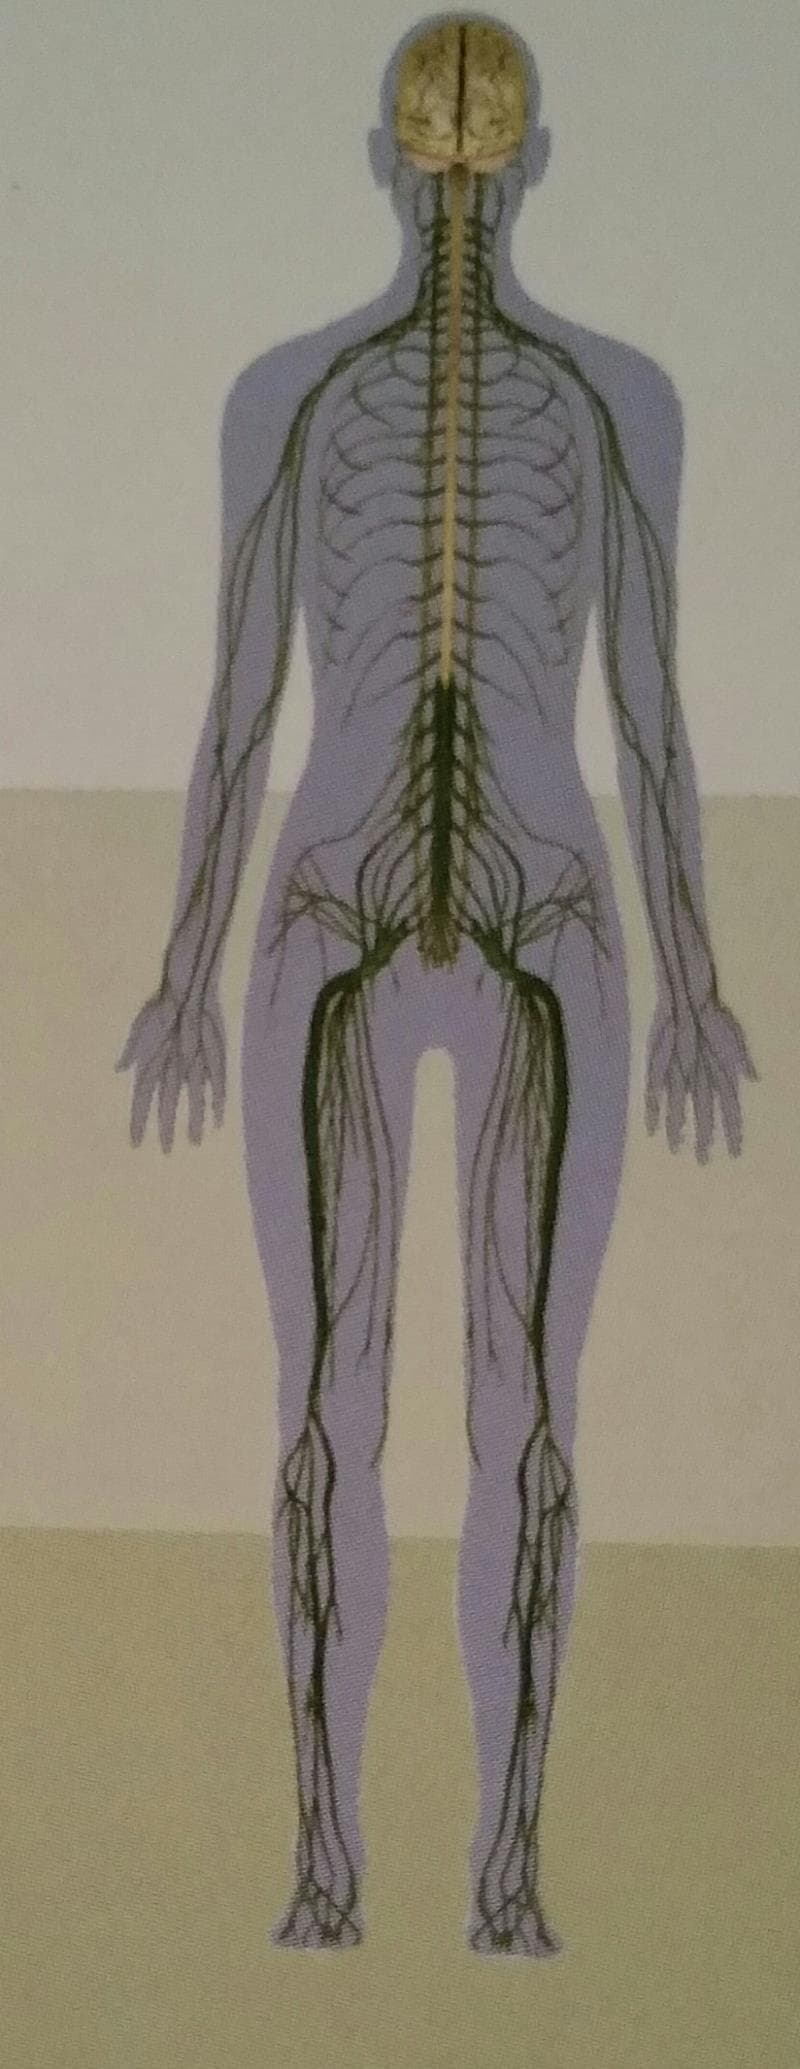 Society Trivia Question: What is the largest nerve in the human body?